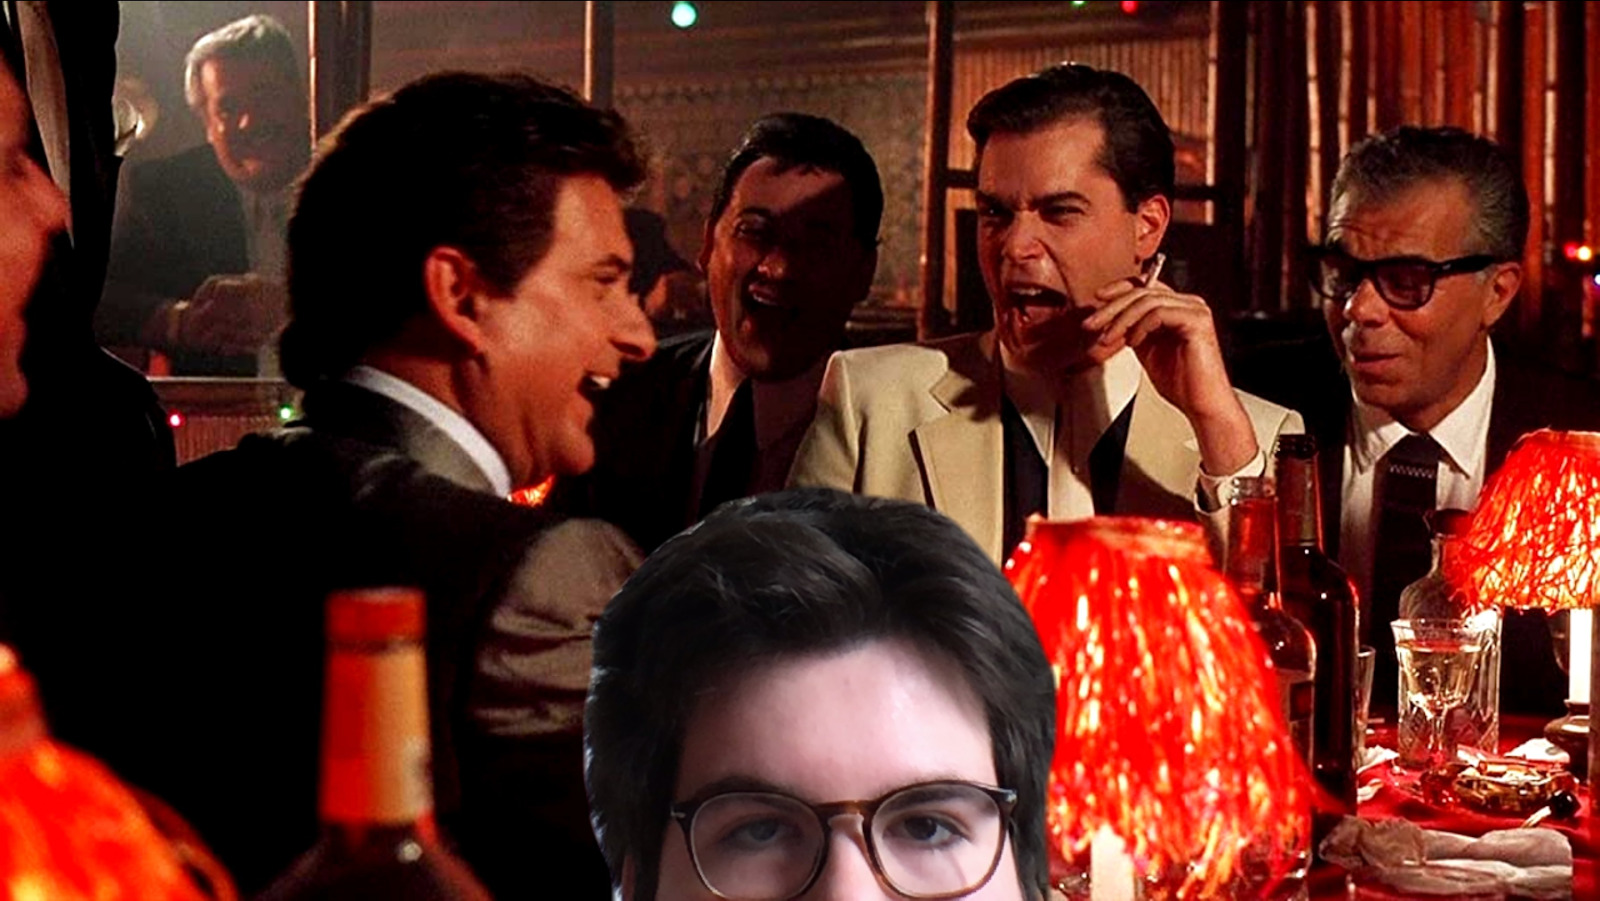 Kevin with Goodfellas Behind